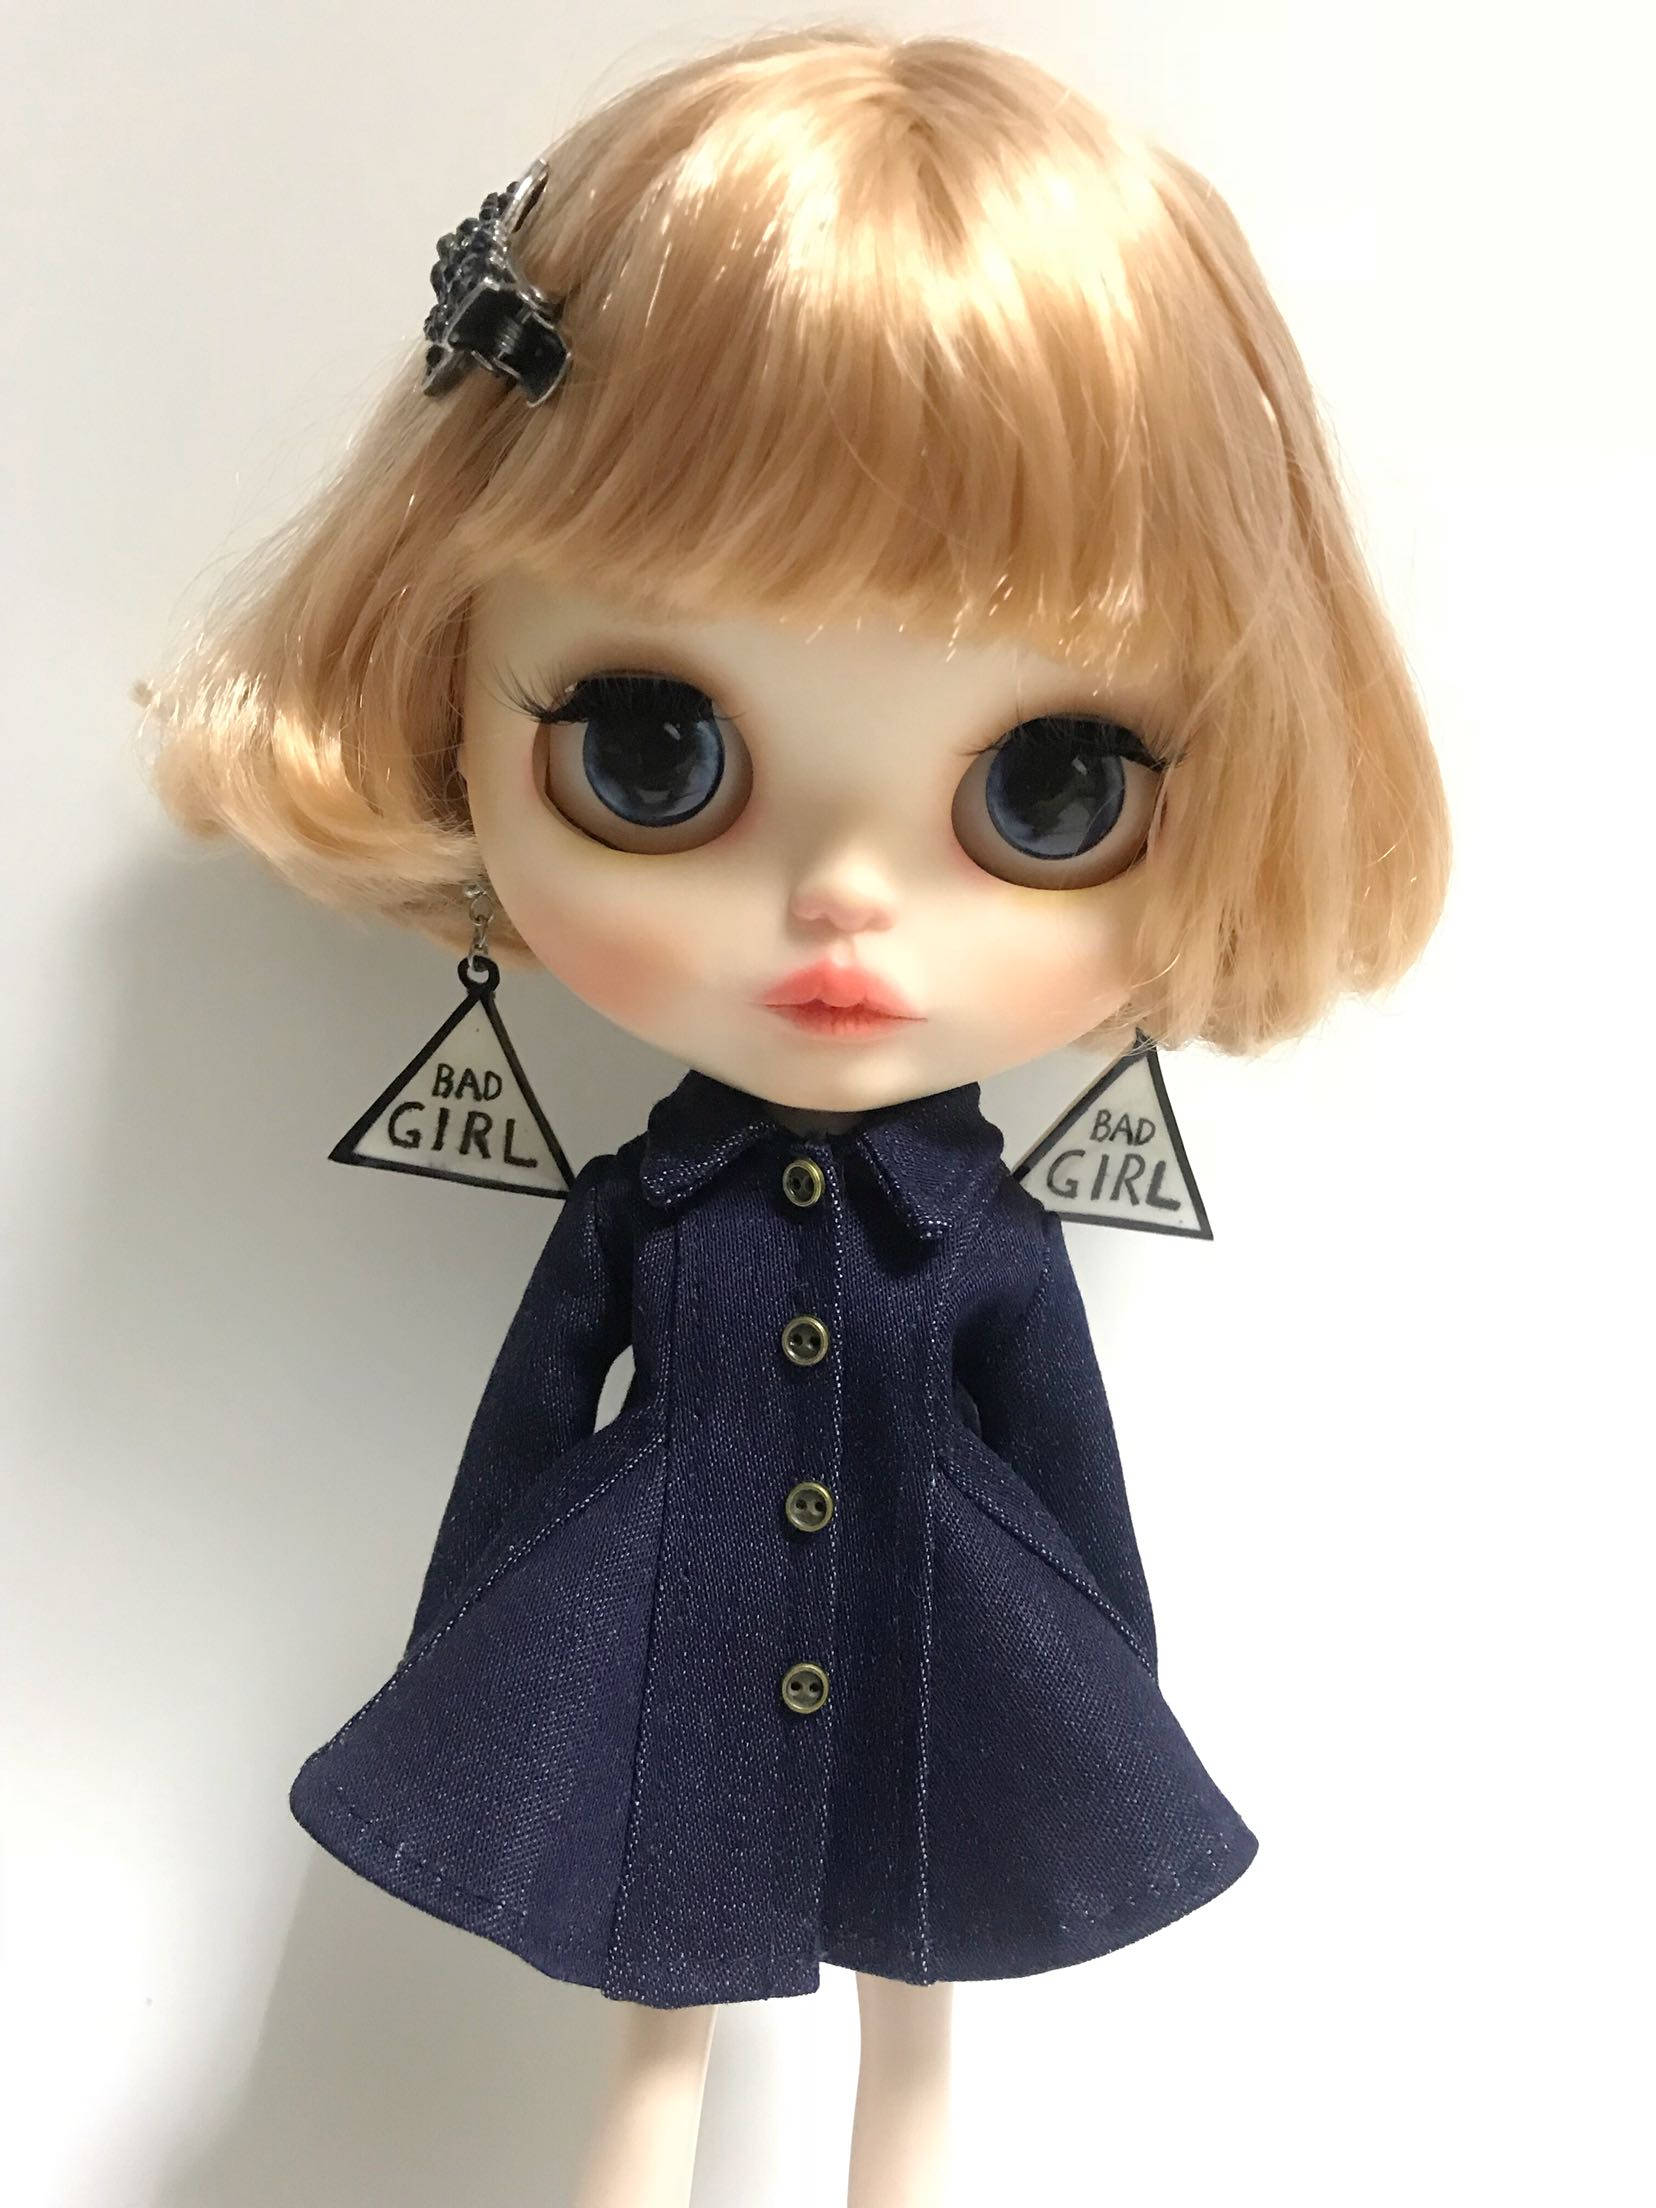 Doll Clothes Cardigan Sweater For Blythe 1//6 BJD Doll Clothing Accessory